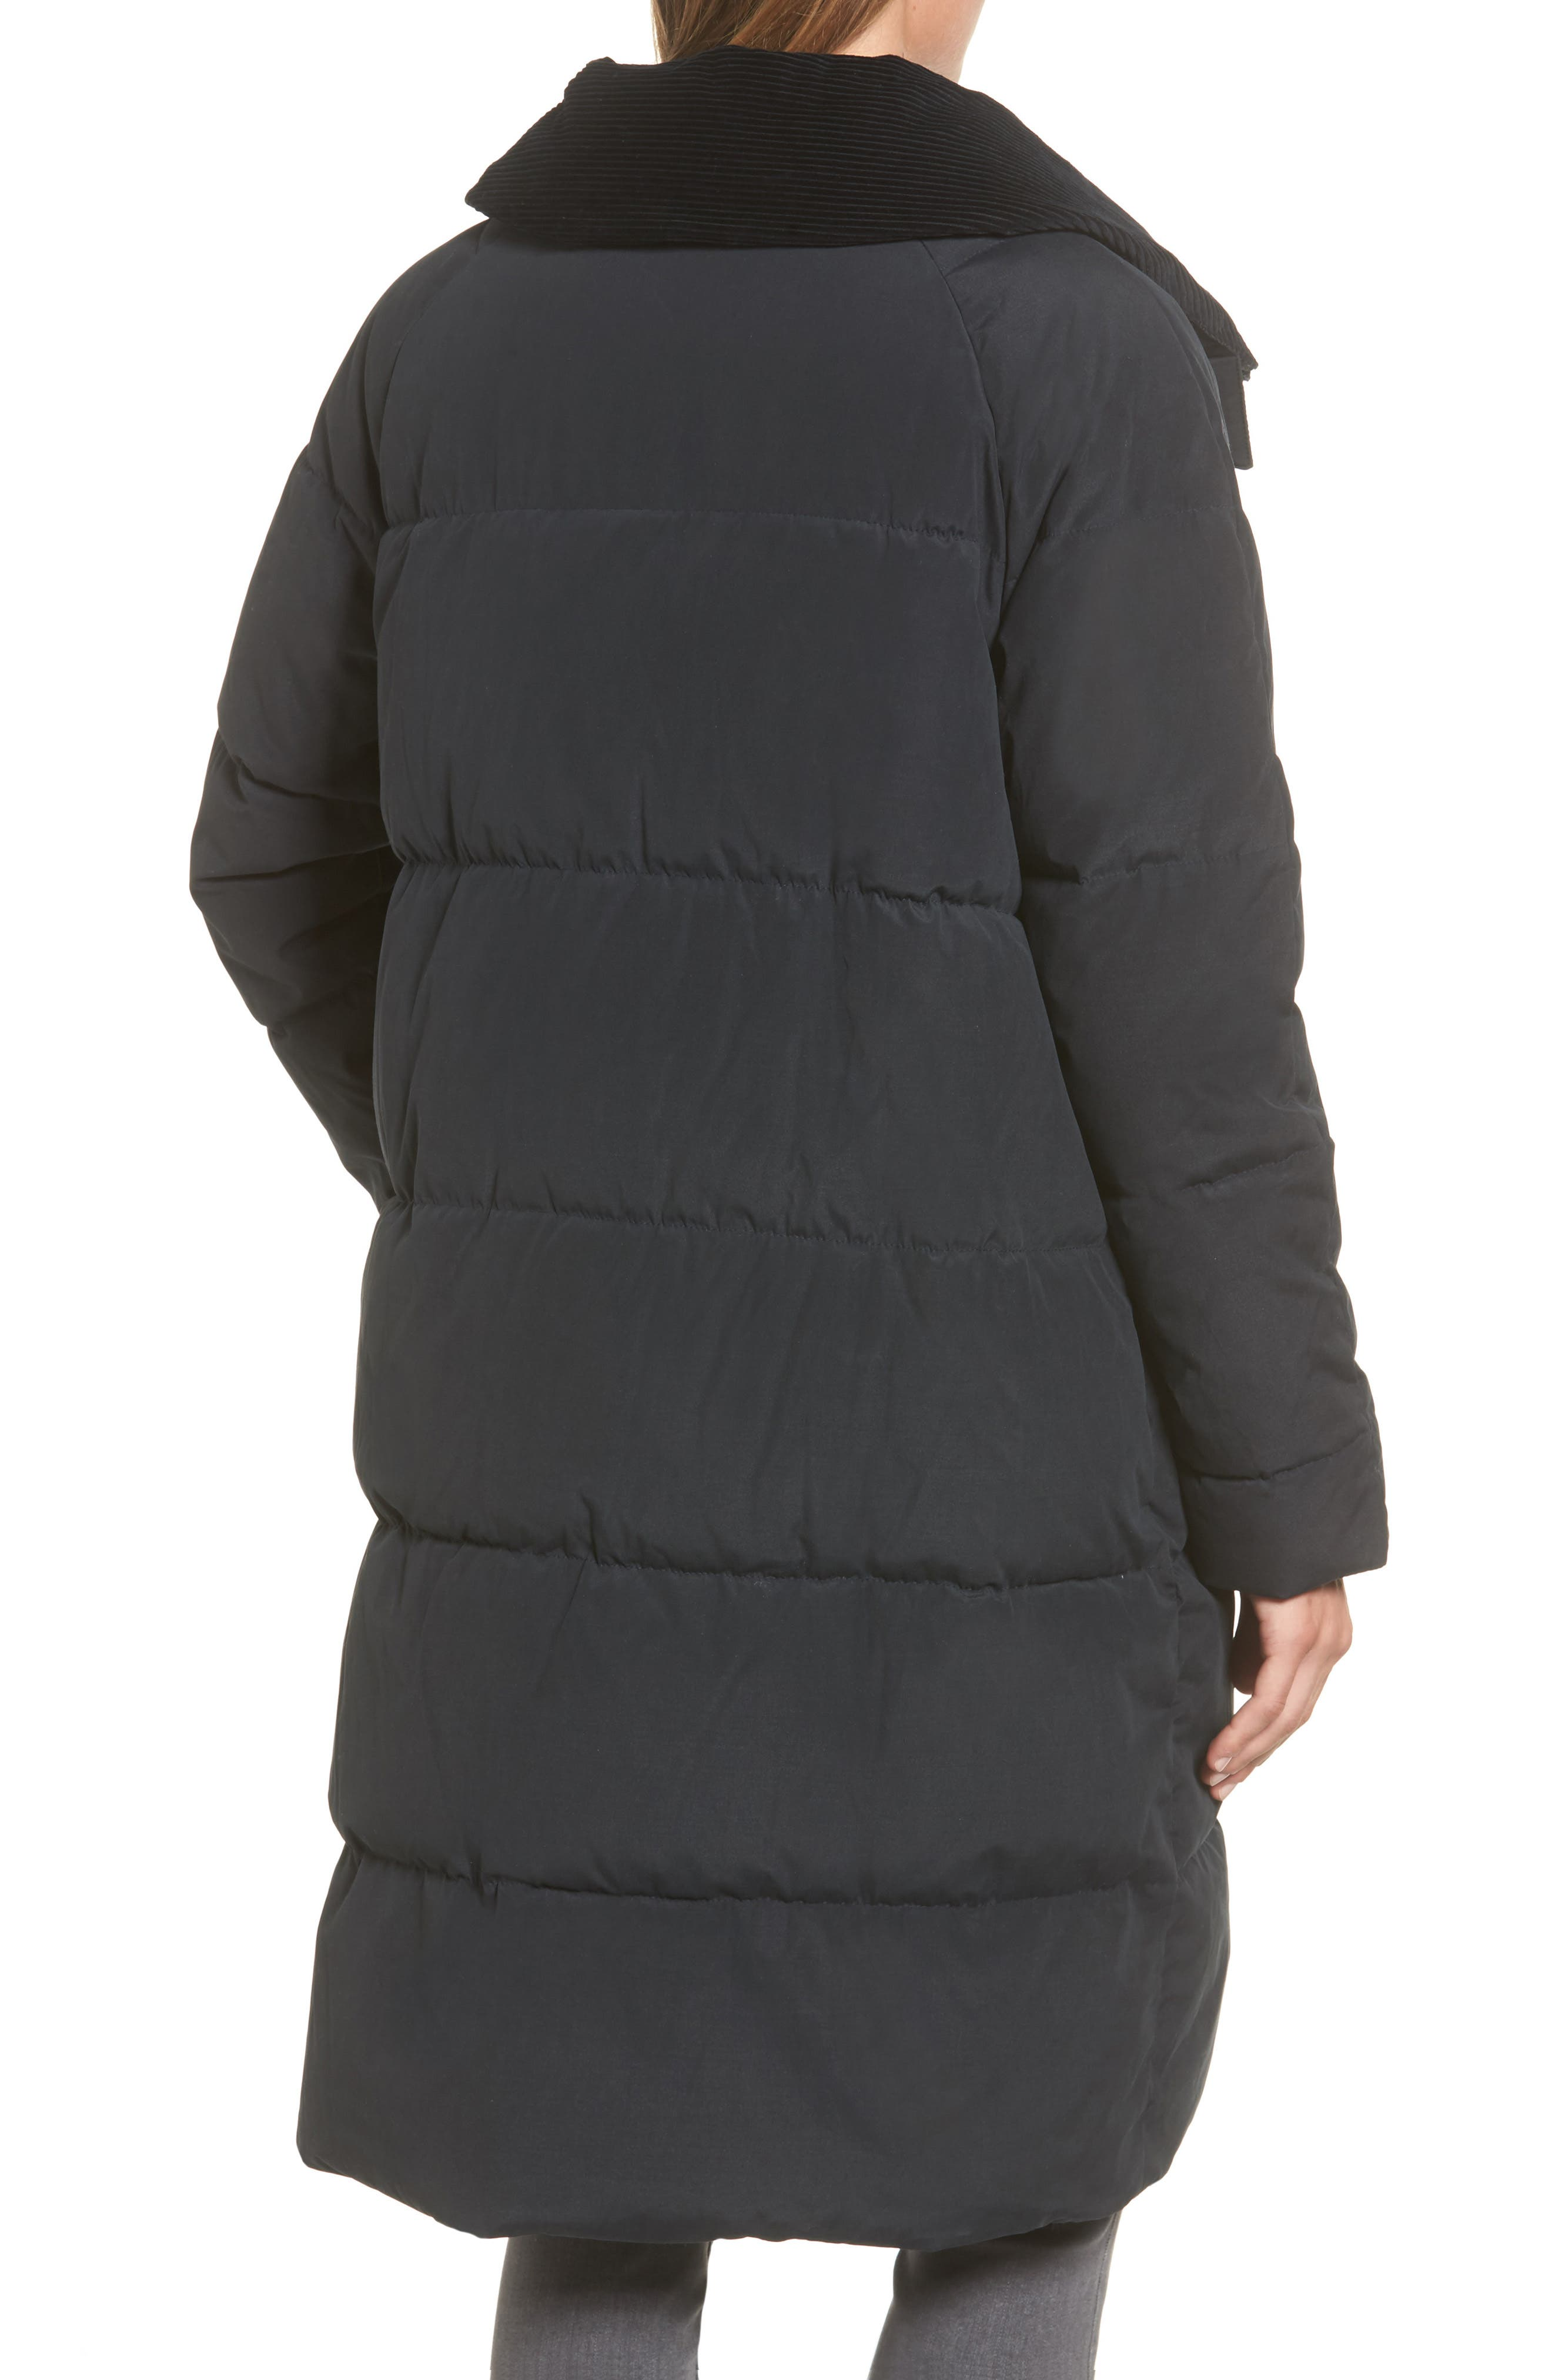 Leck Water Resistant Baffle Quilted Coat,                             Alternate thumbnail 2, color,                             410